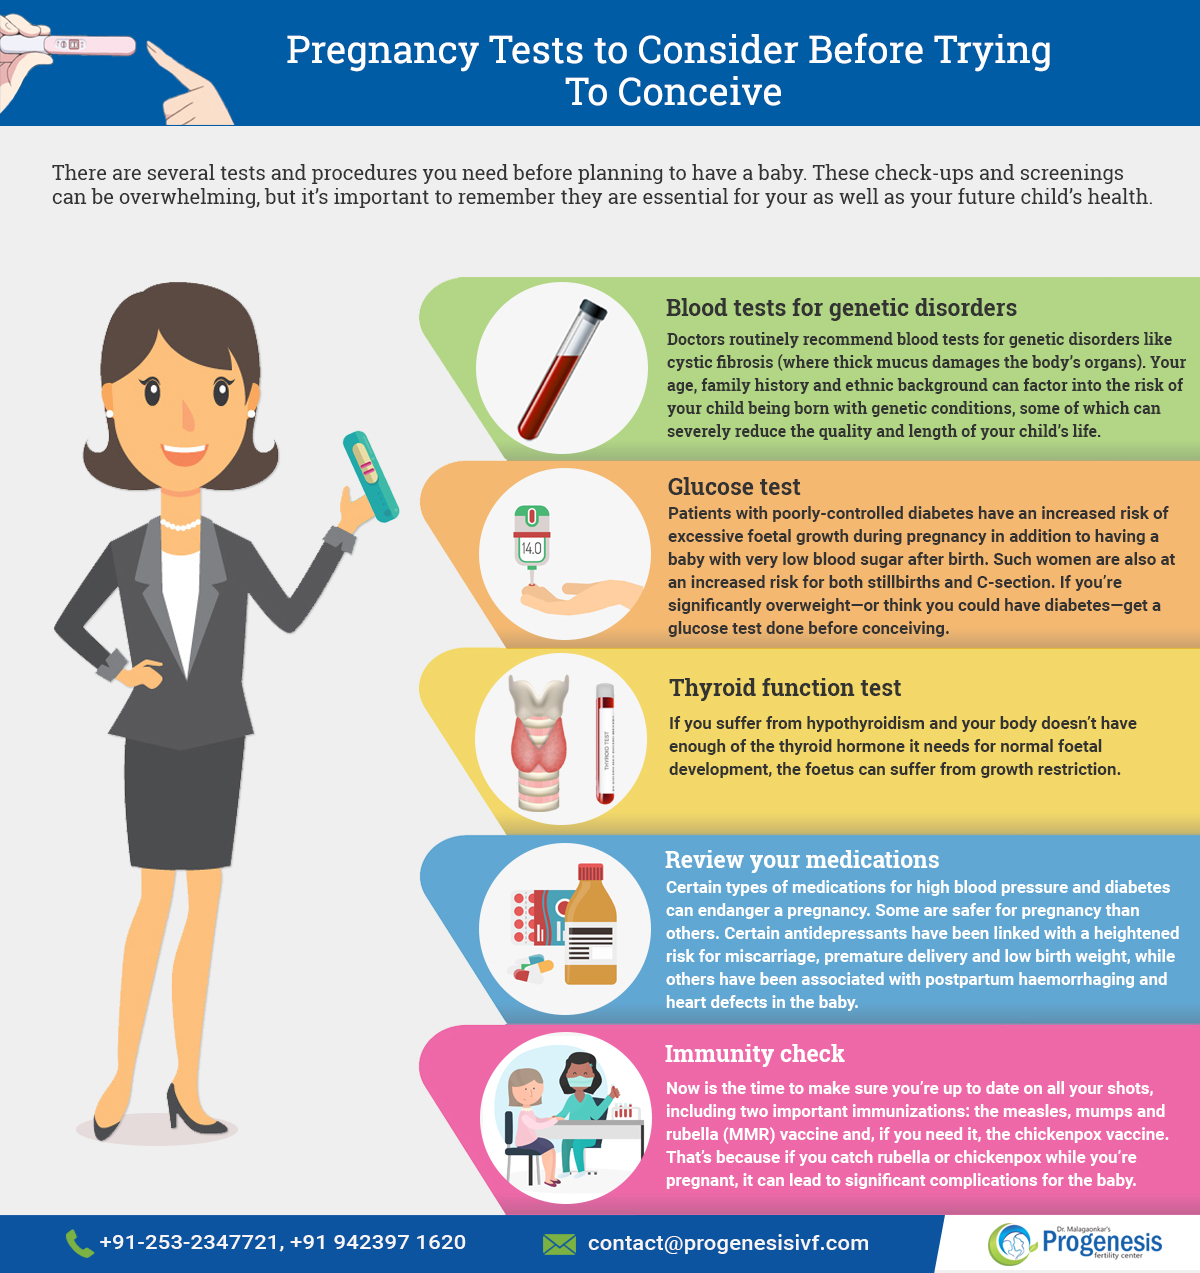 Pregnancy Tests to Consider Before Trying to Conceive